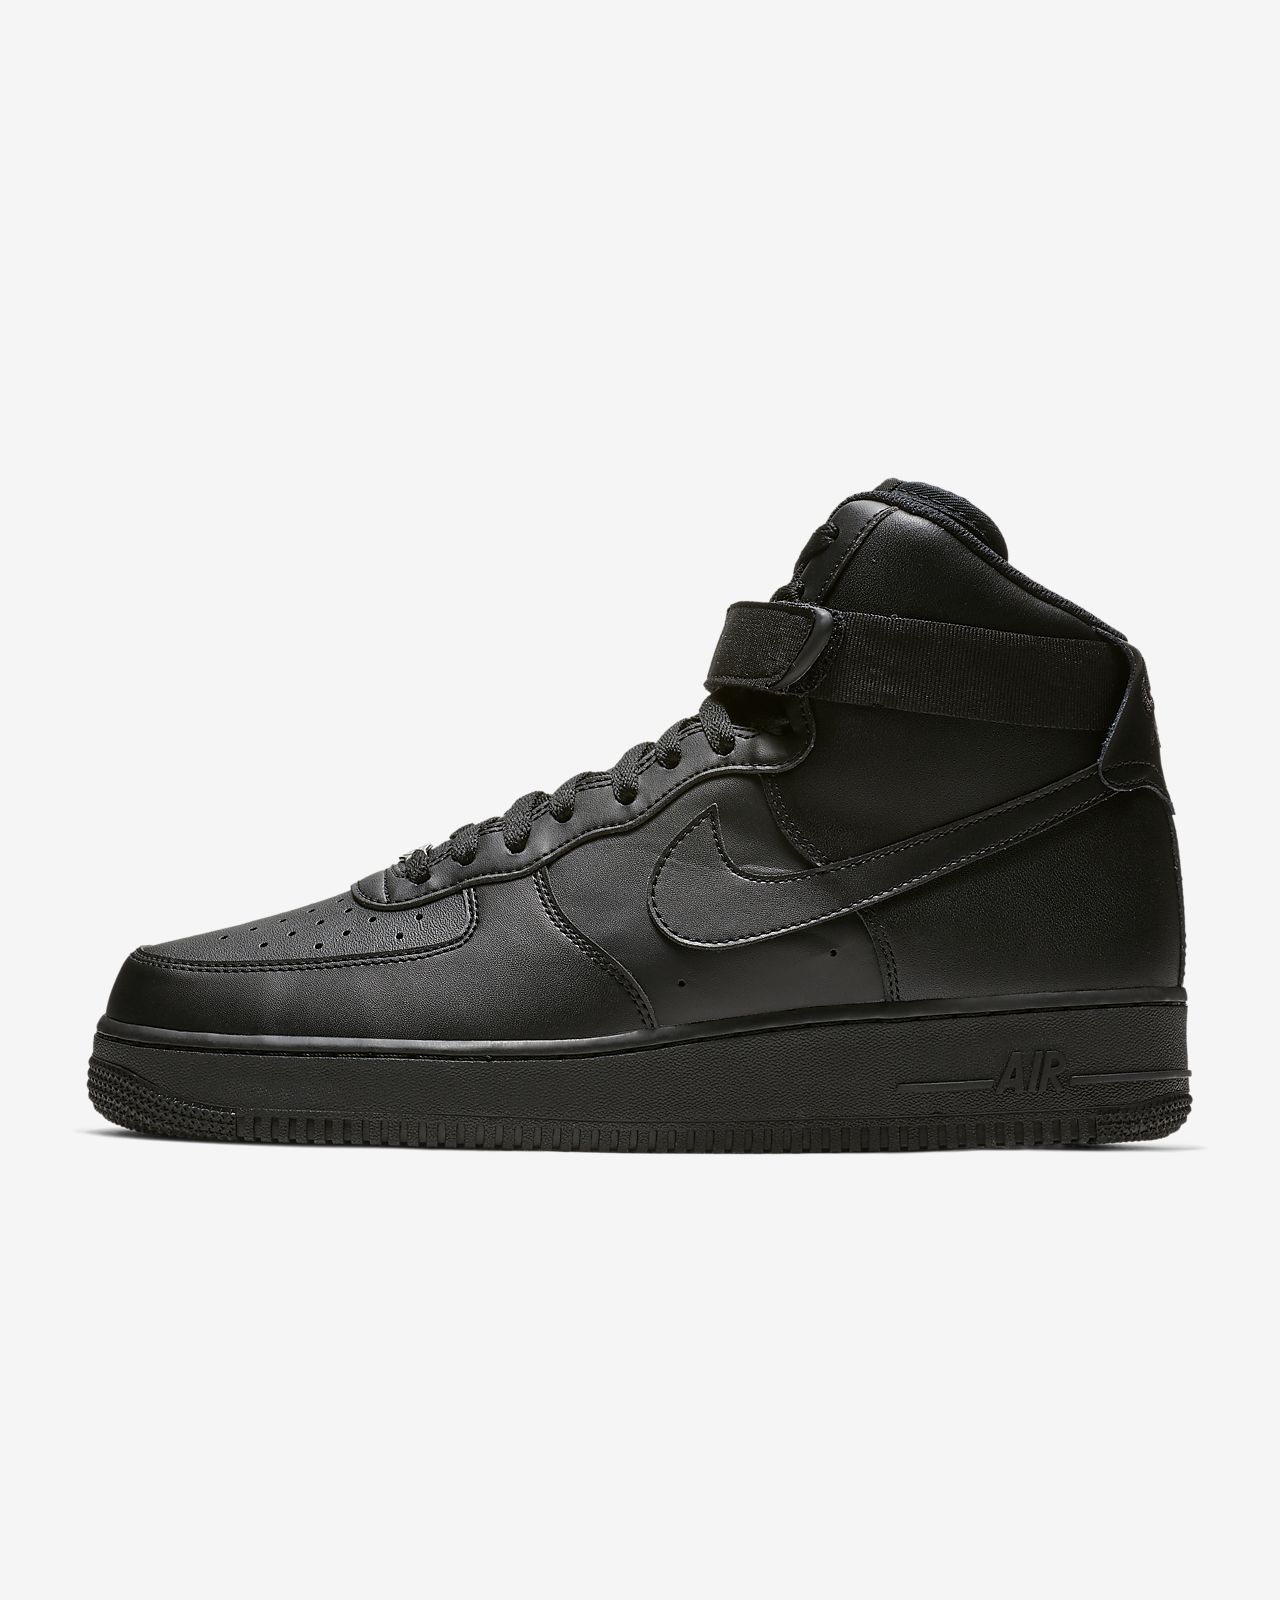 19cb57abfa95 Nike Air Force 1 High 07 Men s Shoe. Nike.com